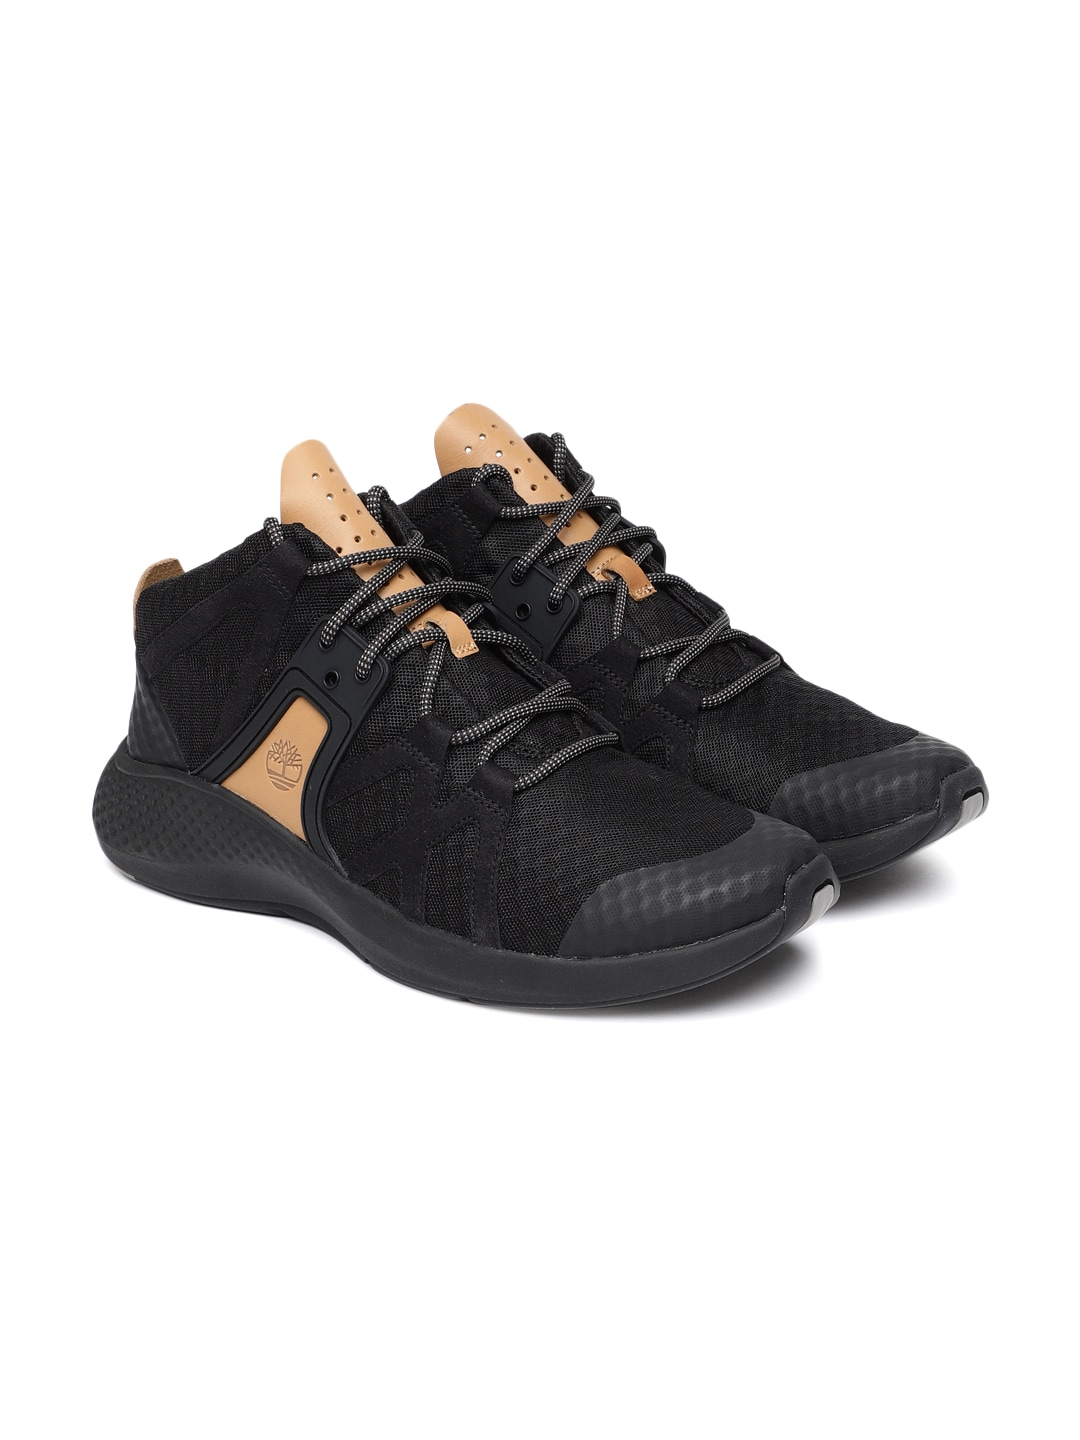 b347ccc47141 Timberland Black Sneakers for Men online in India at Best price on ...